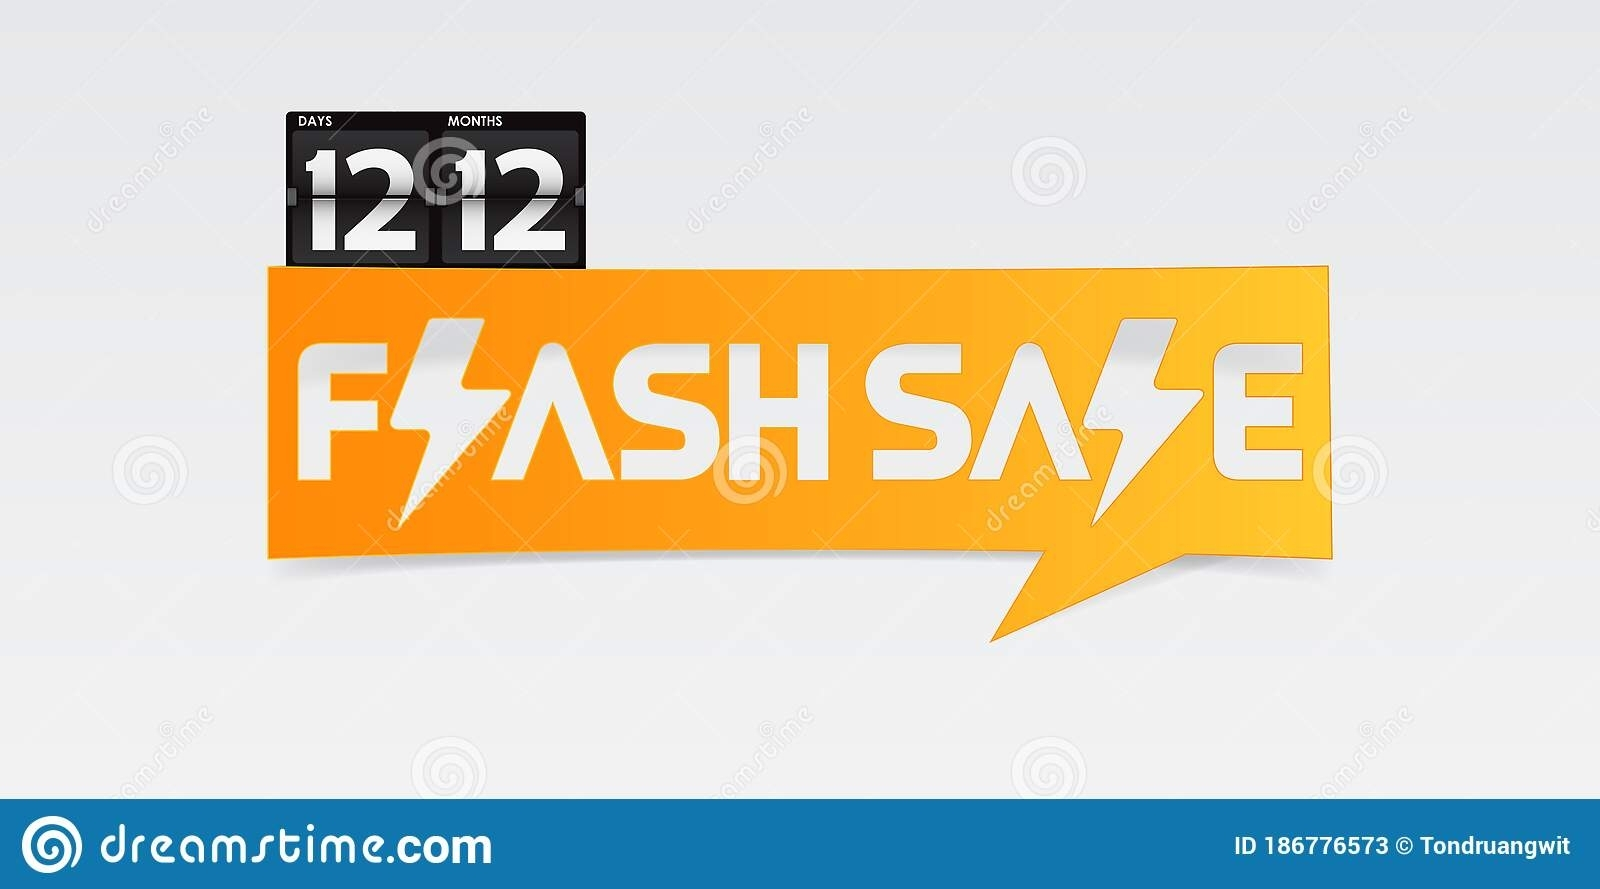 12.12 Shopping Day Flash Sale Banner, Discount Labels With